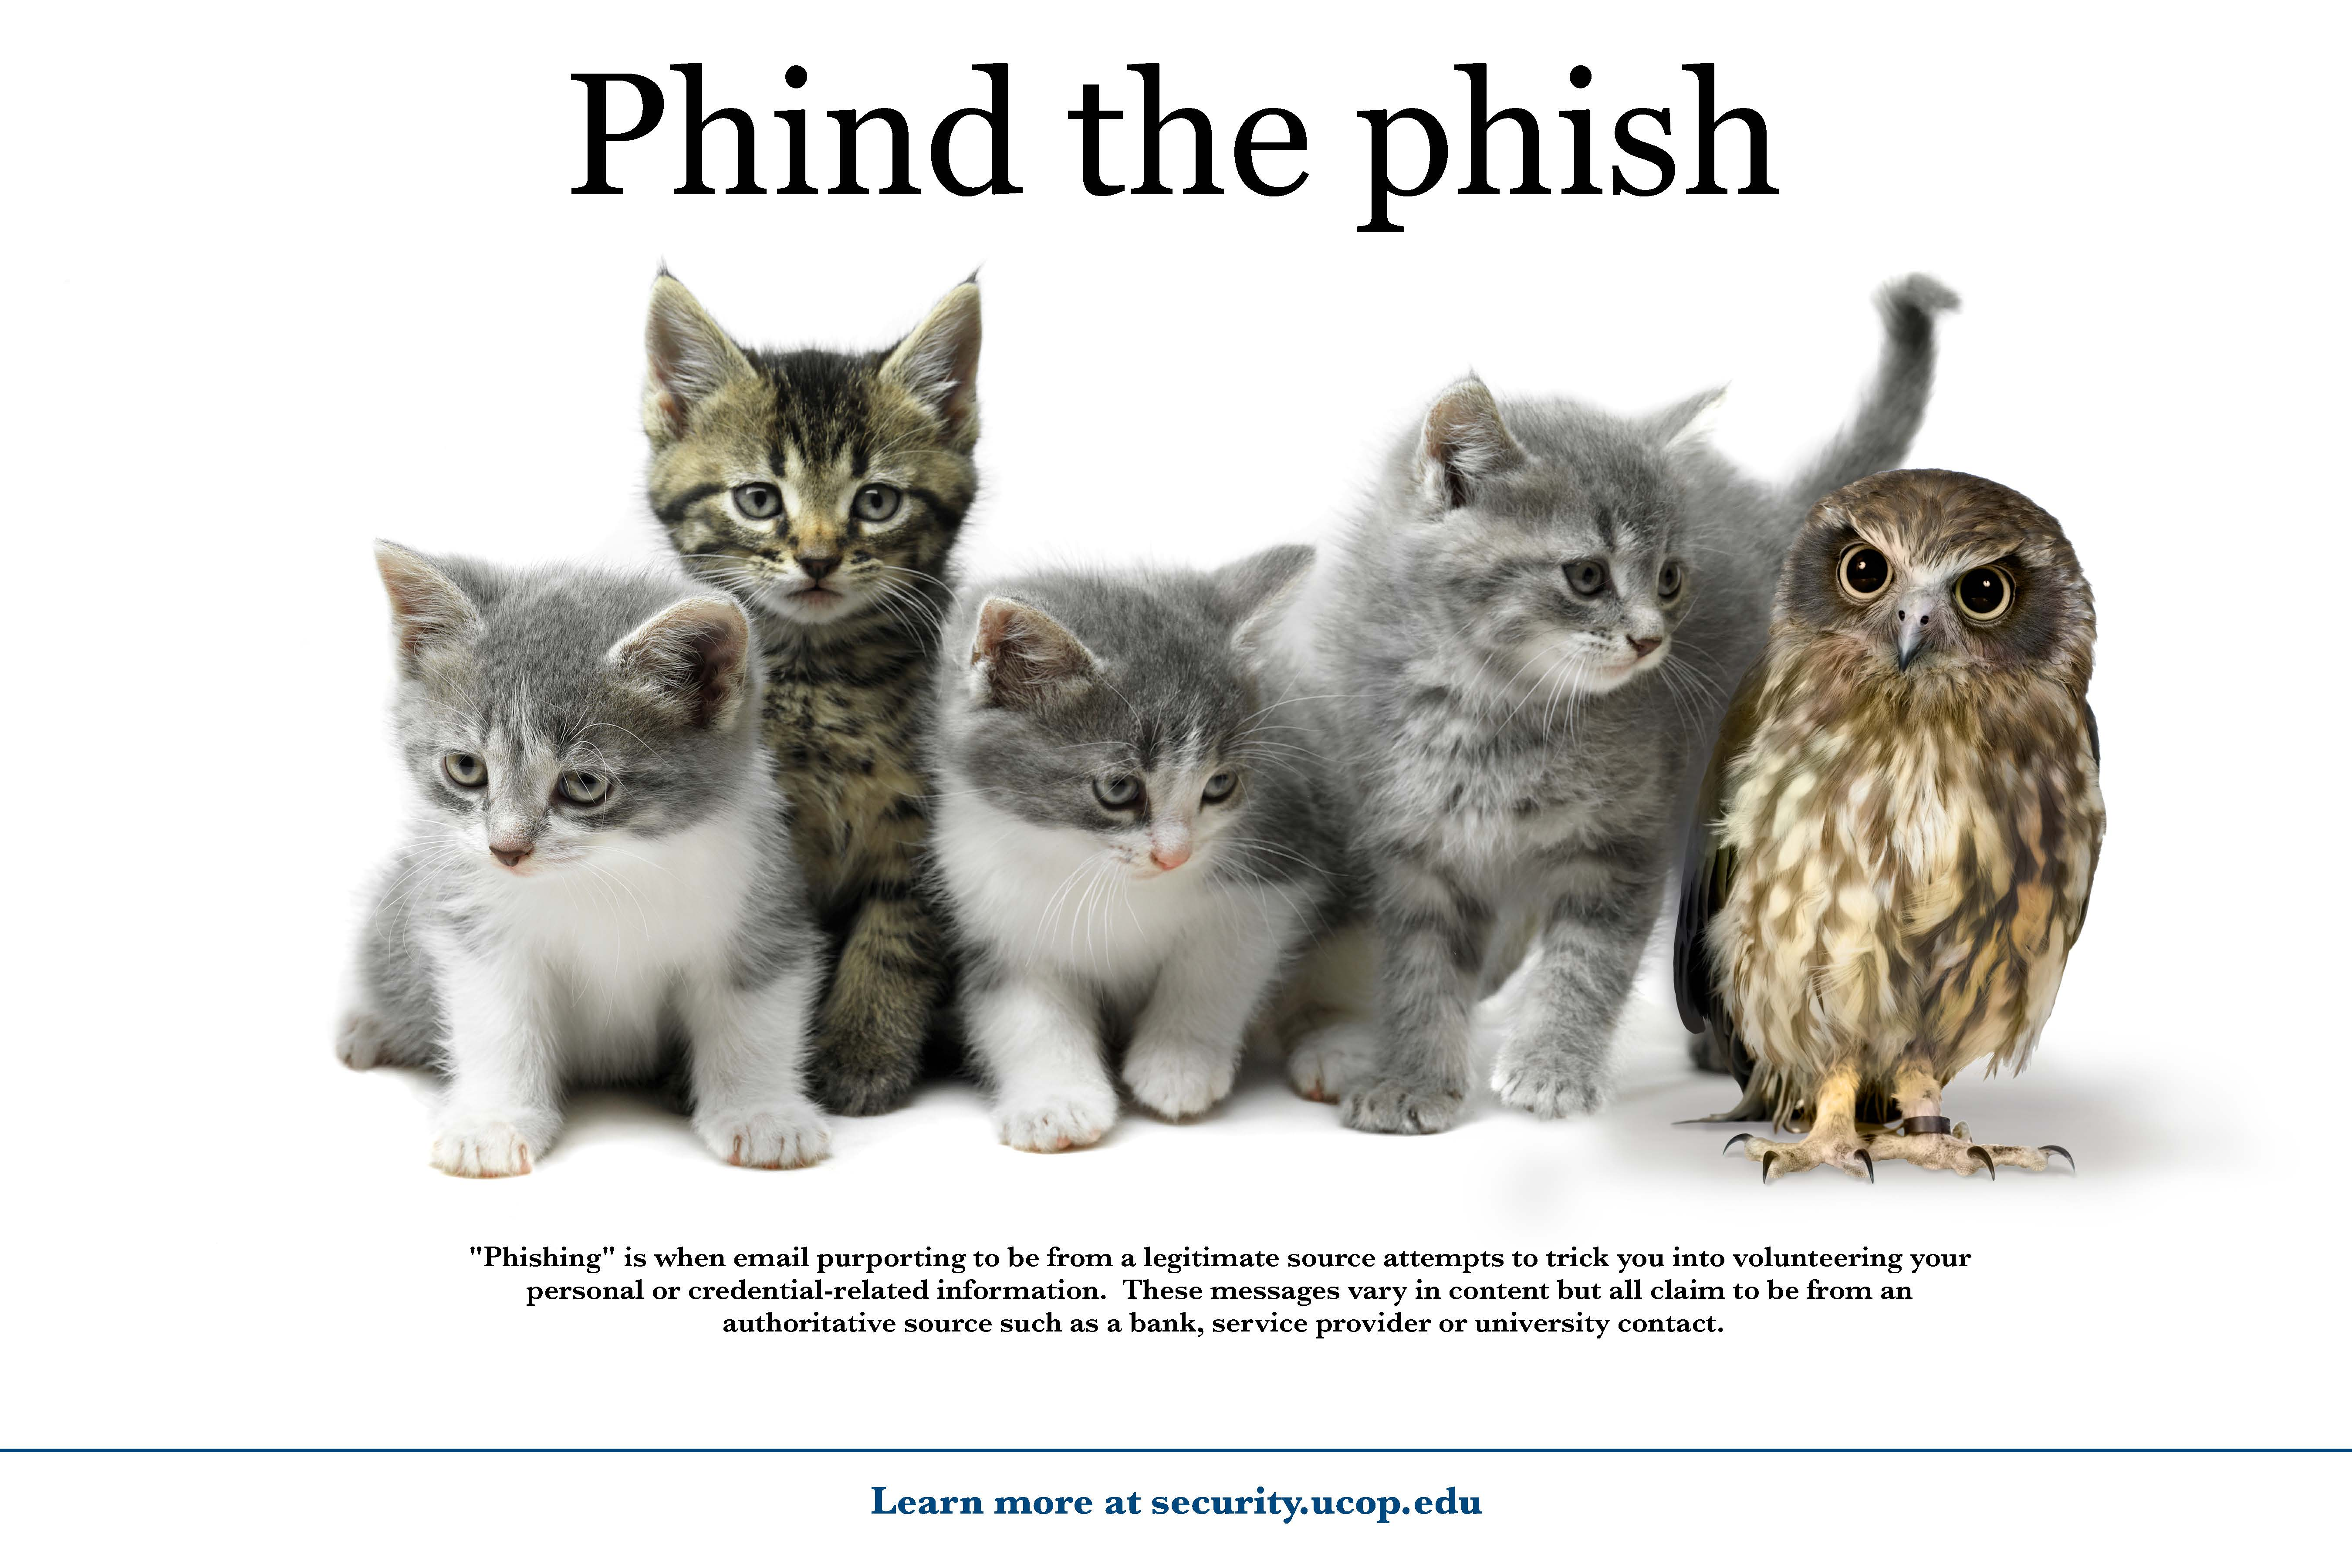 Flyer: Phind the phish. - Kitten Owl